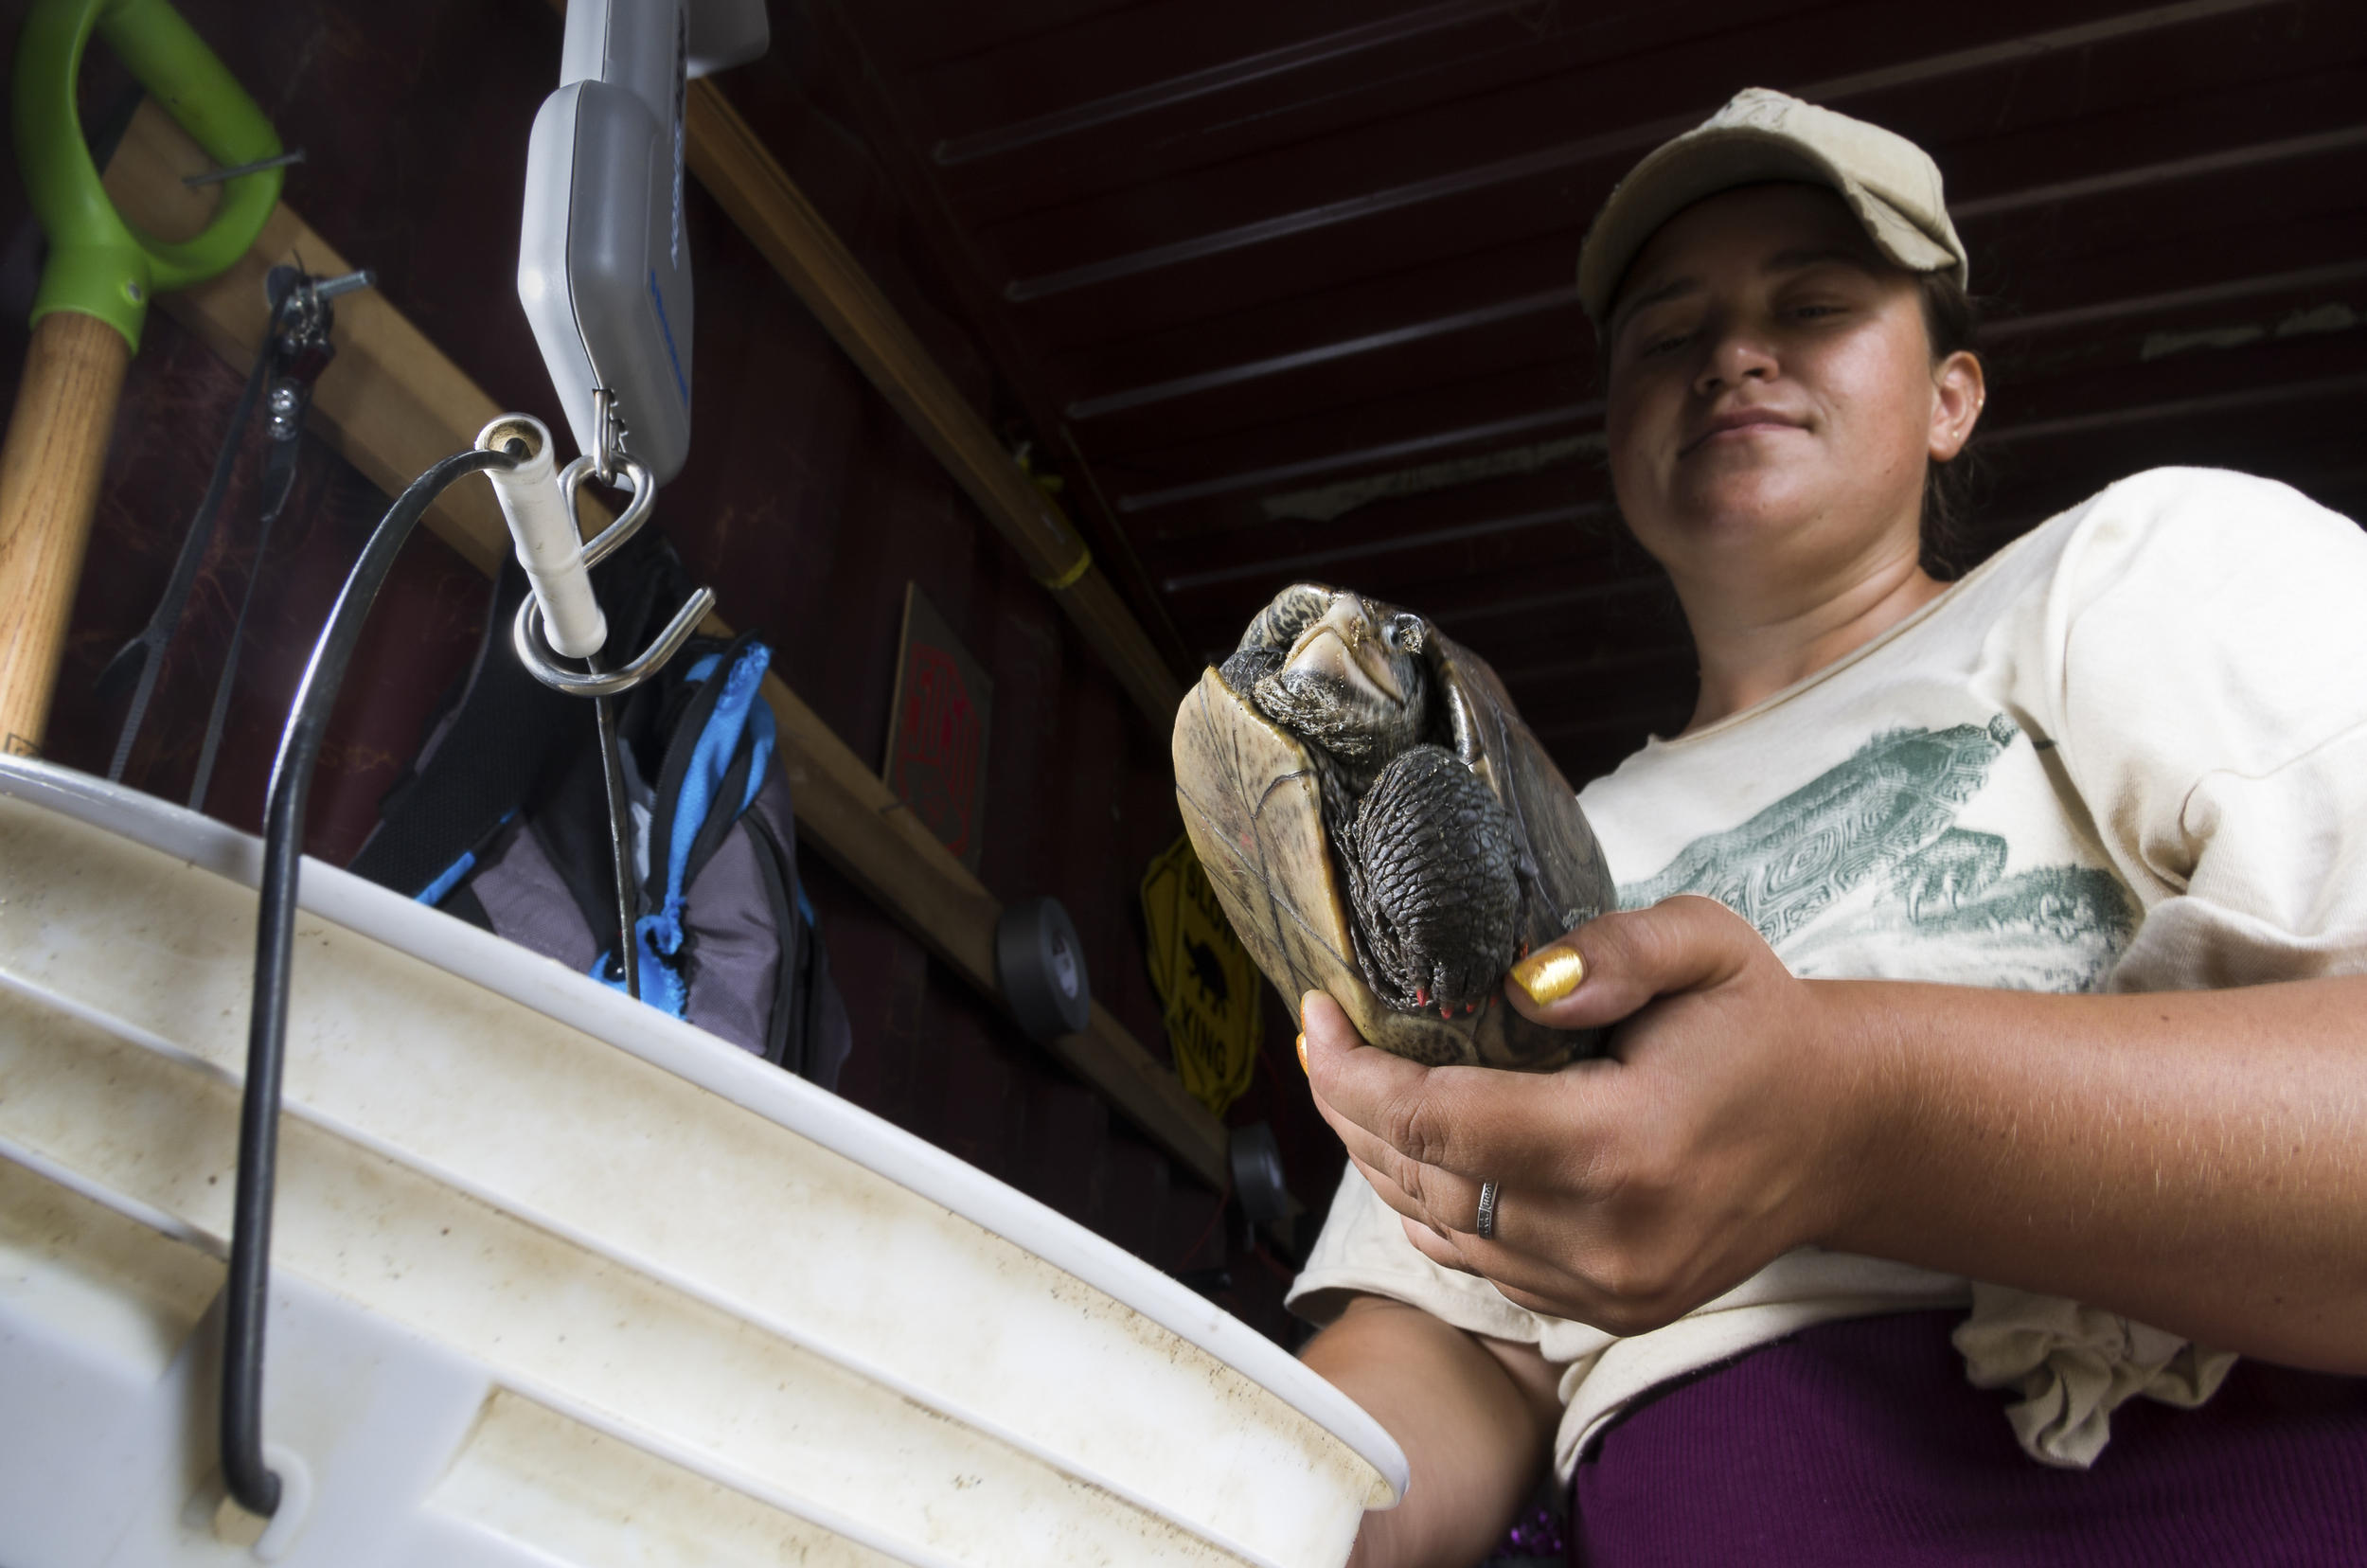 A Diamondback terrapin being weighed.